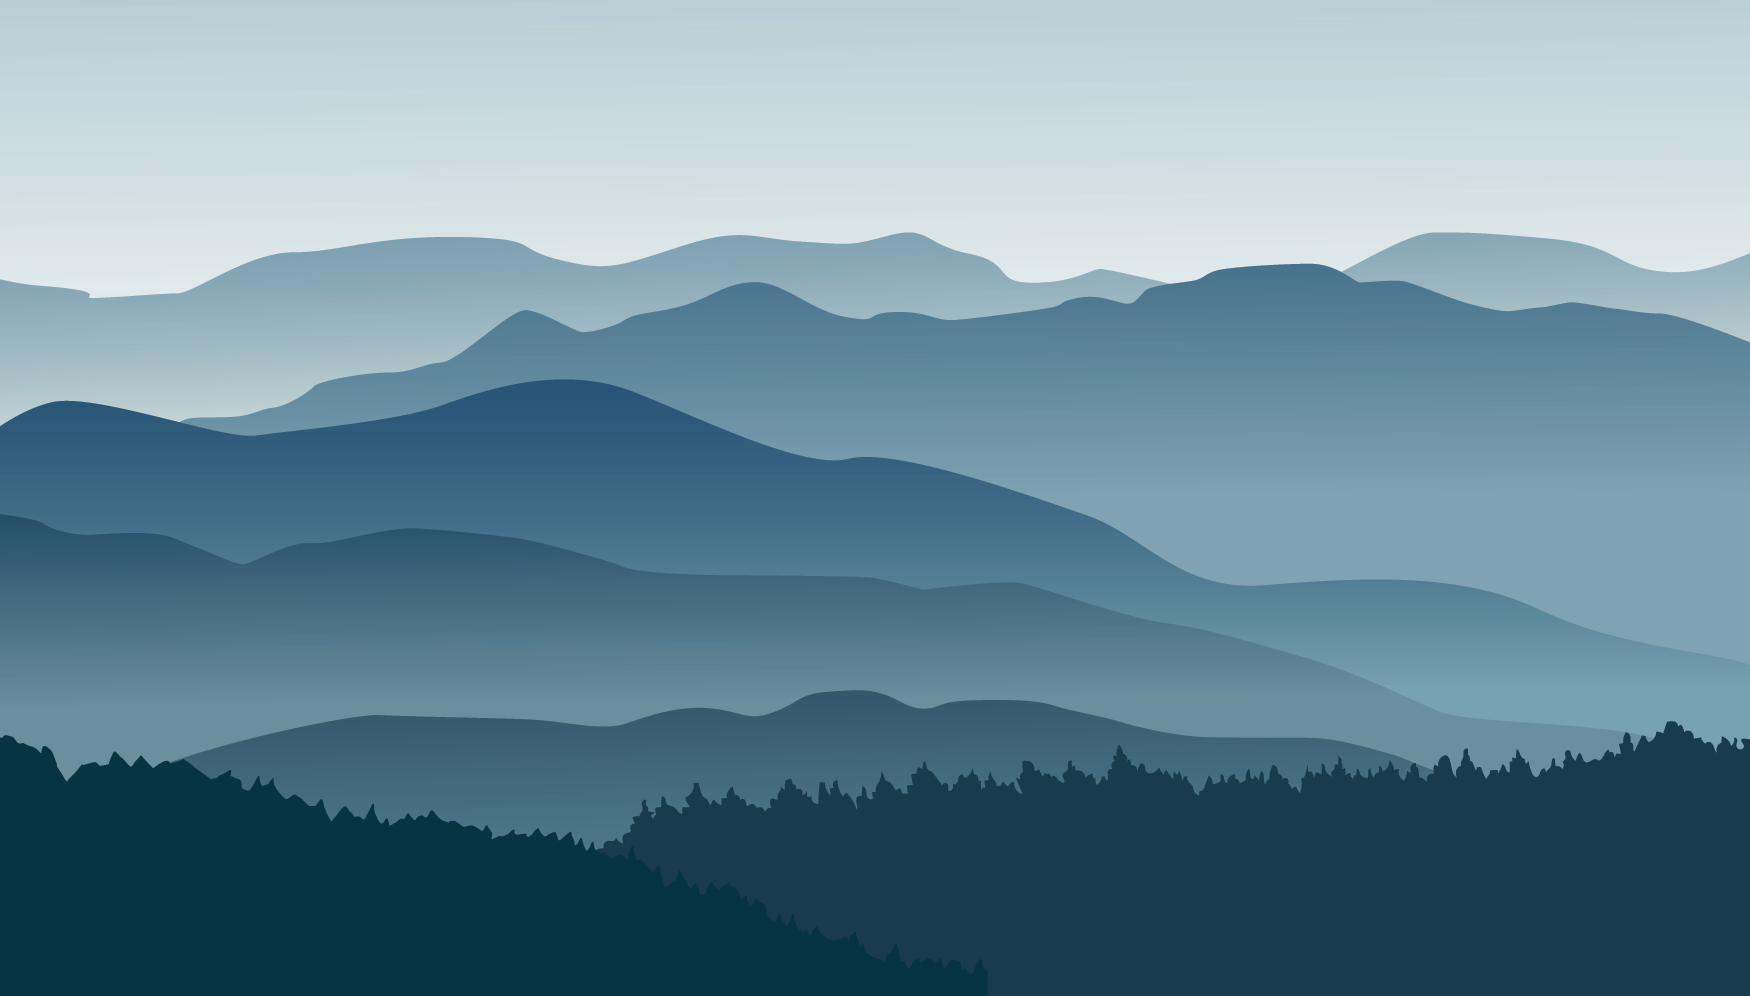 Mountains-background